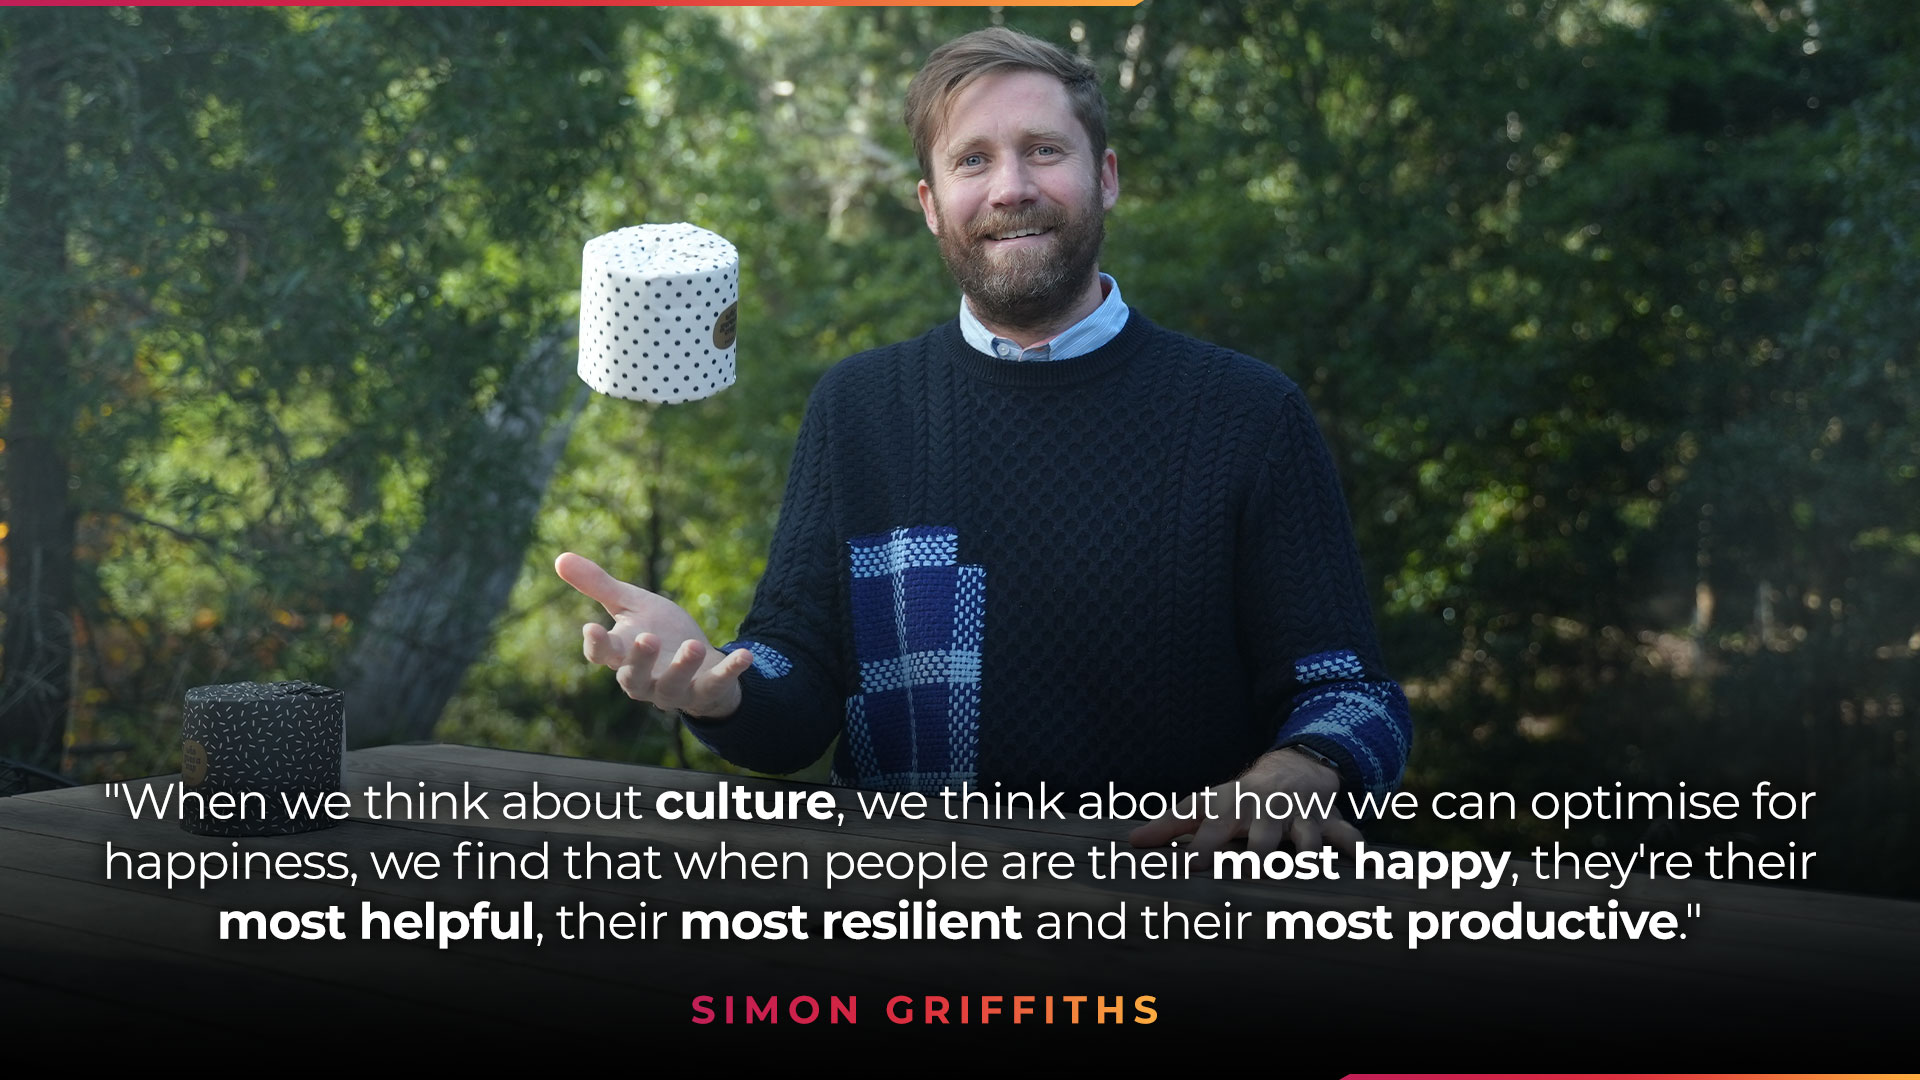 quote from Simon Griffiths